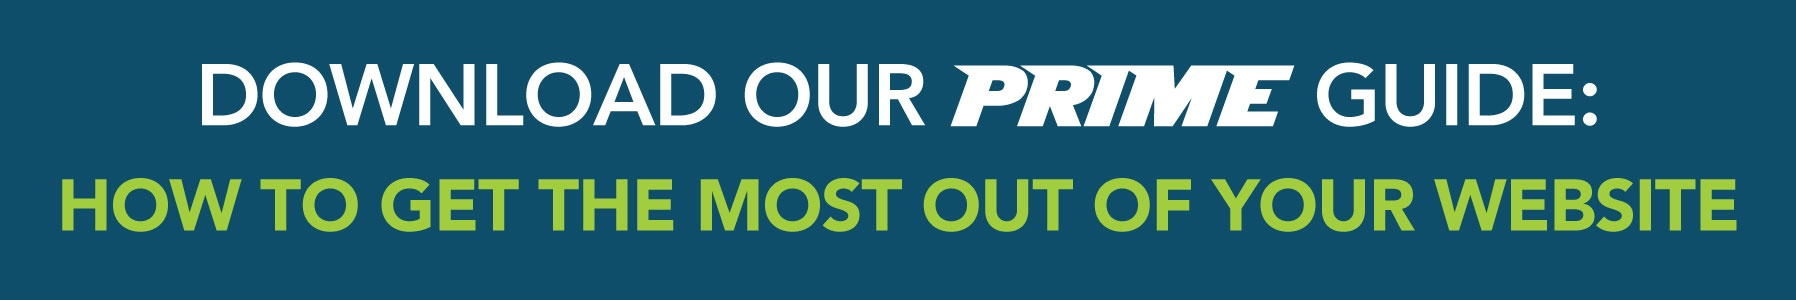 Download our PRIME Guide: How to Get the Most Out of Your Website